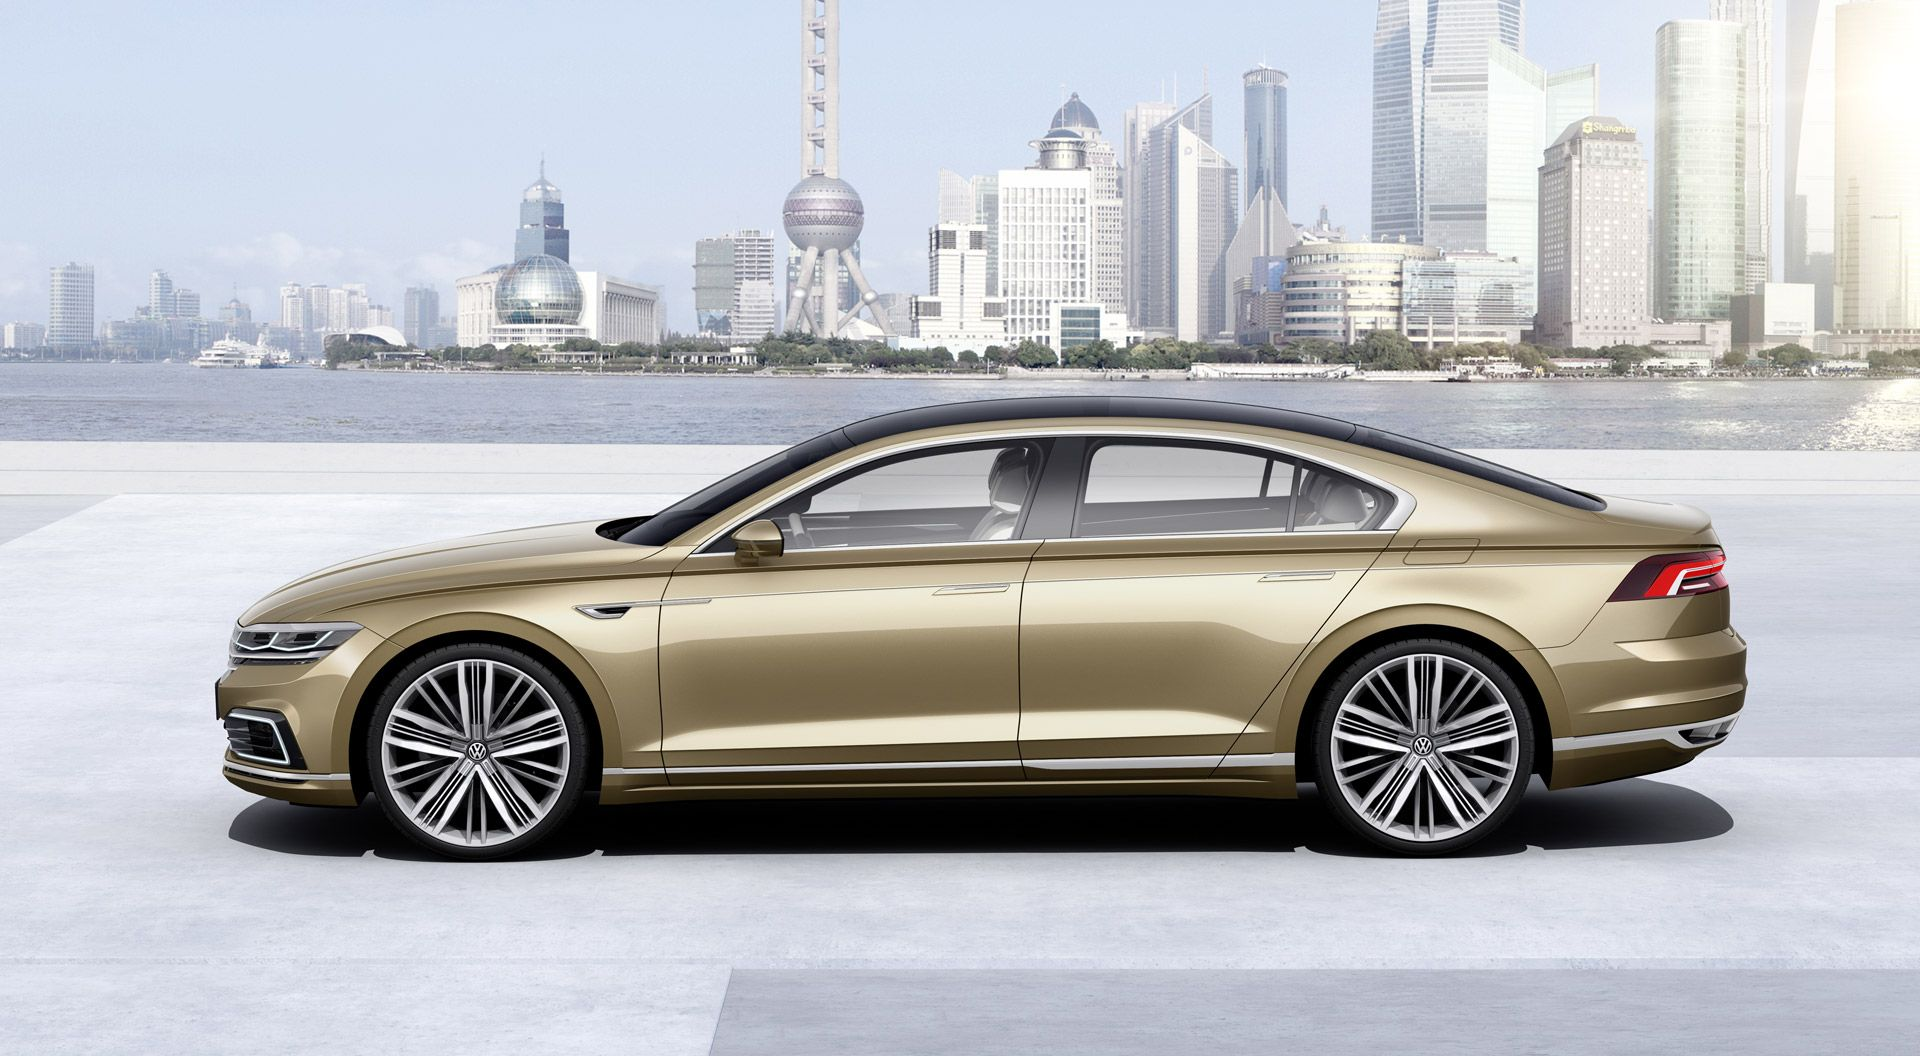 Volkswagen has confirmed that the next generation Phaeton will